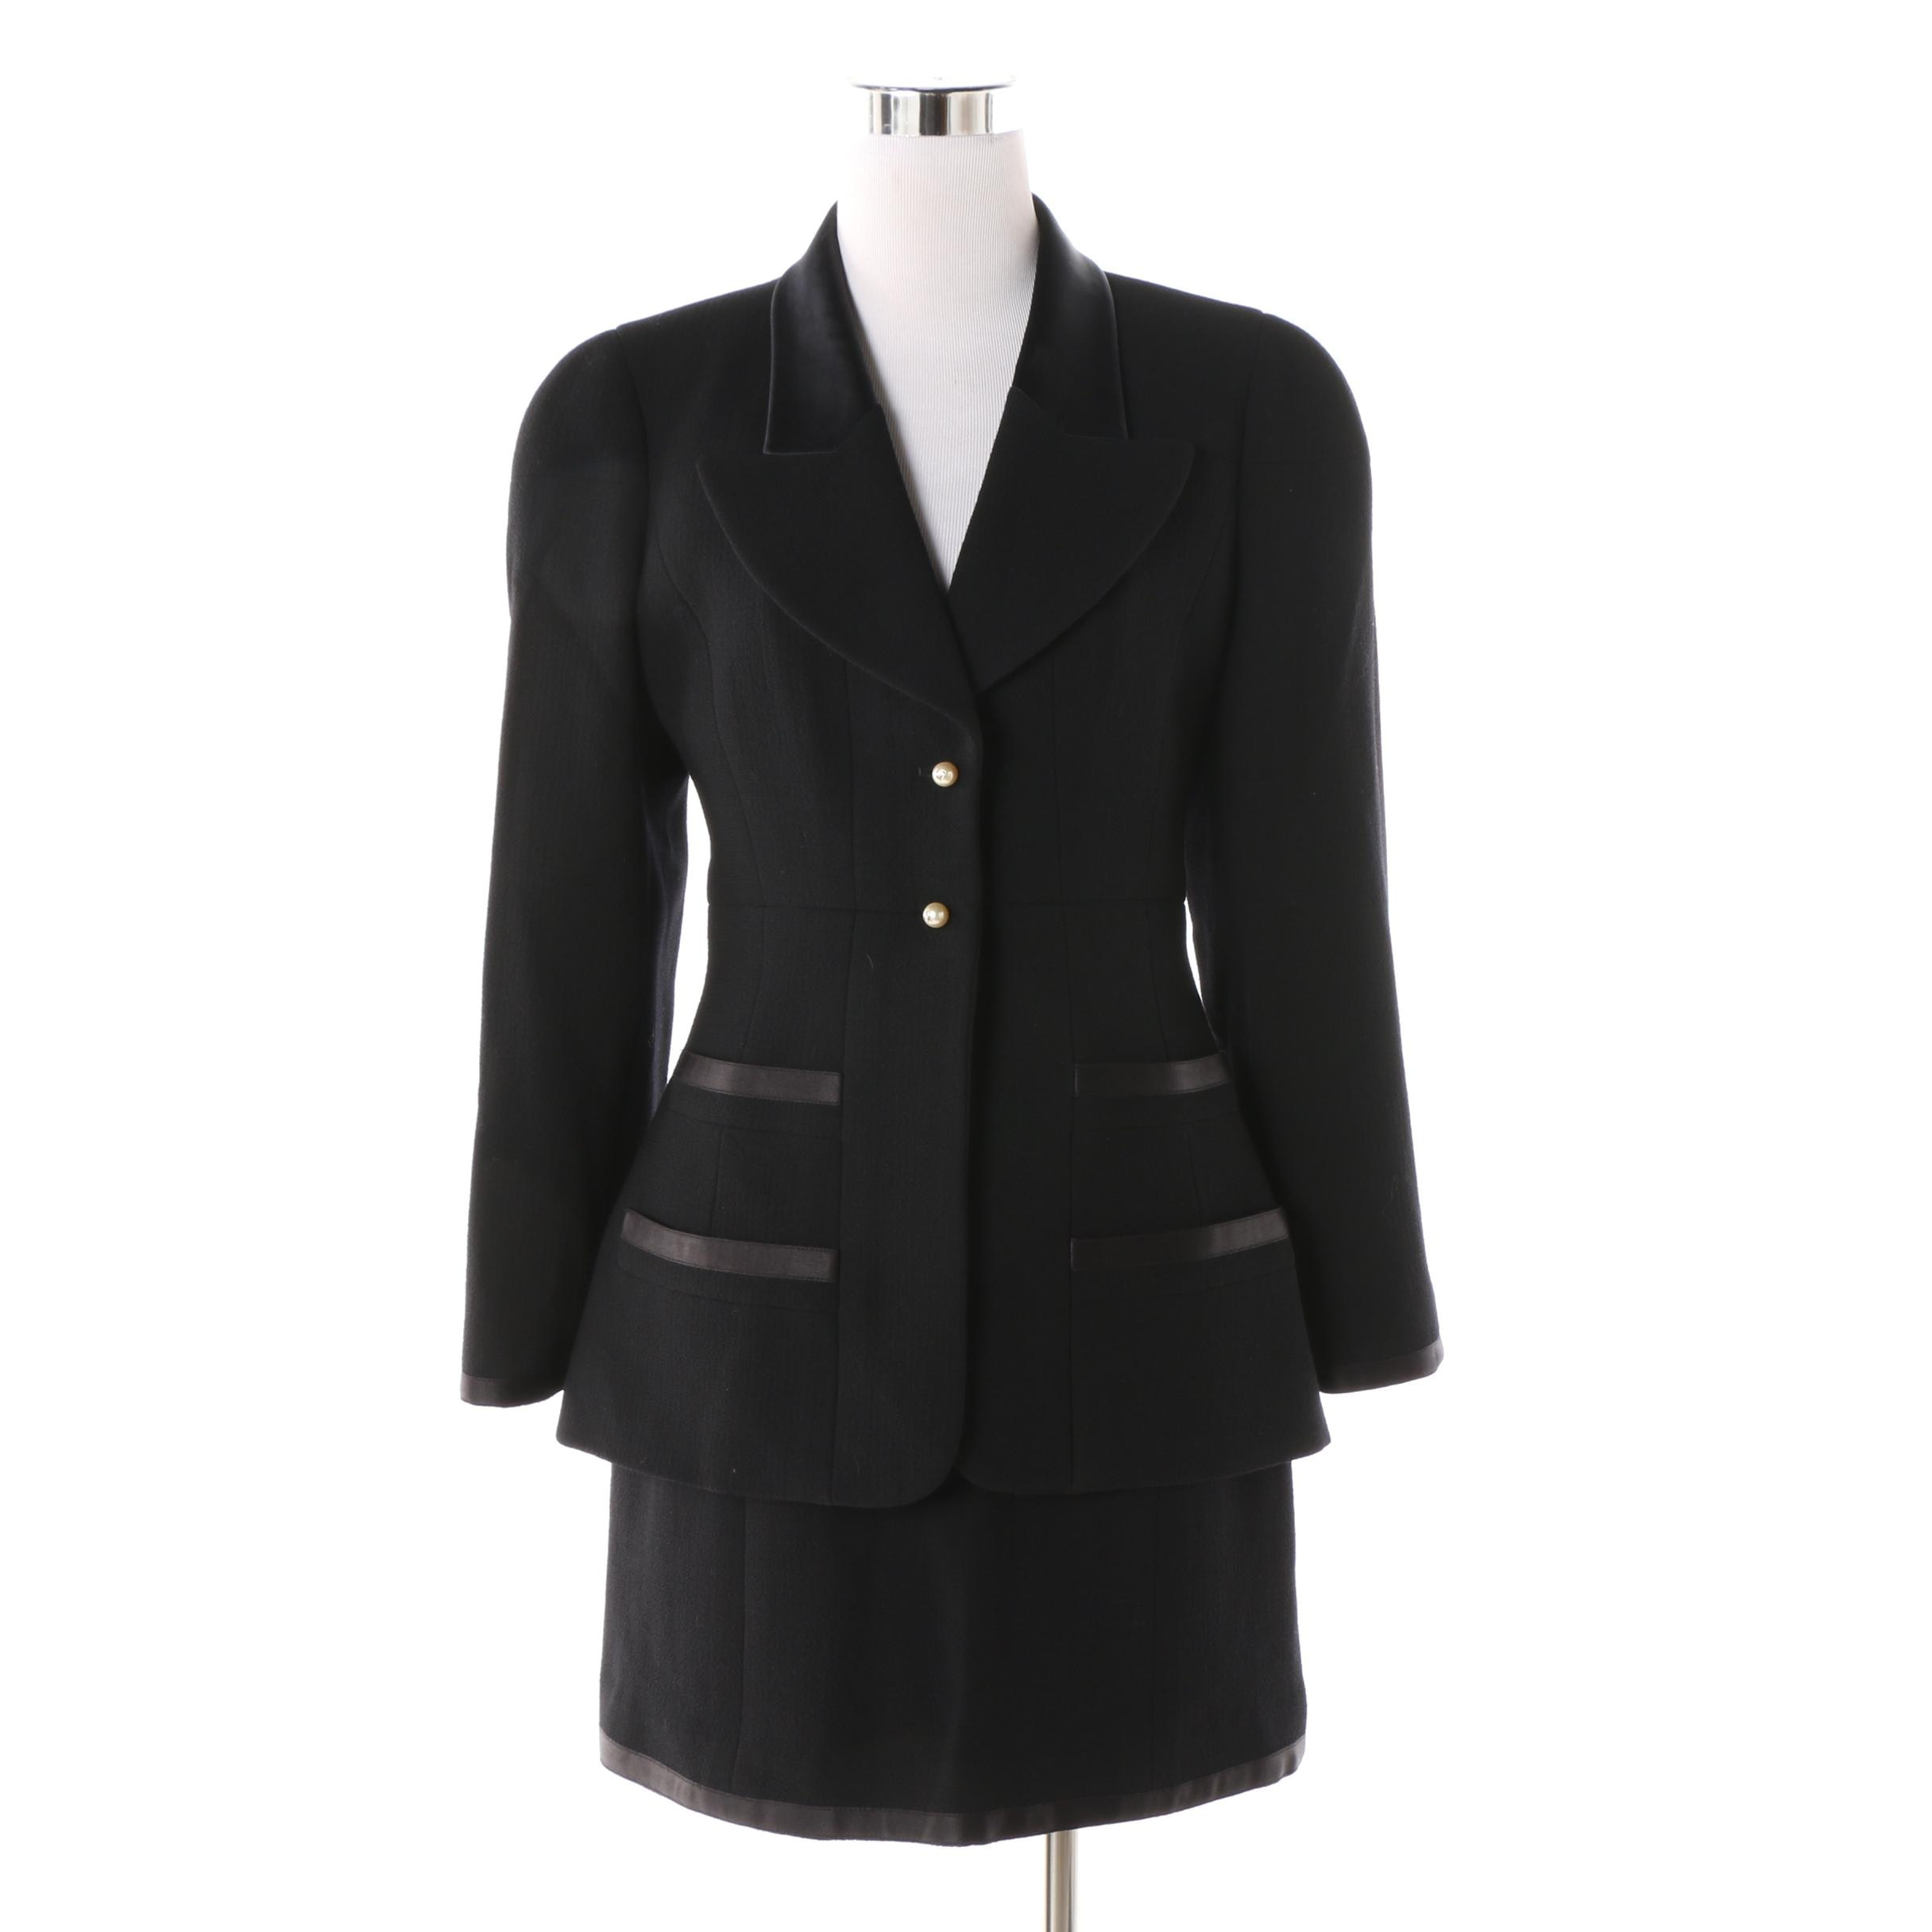 Chanel Boutique Black Wool Skirt Suit with Silk Trim